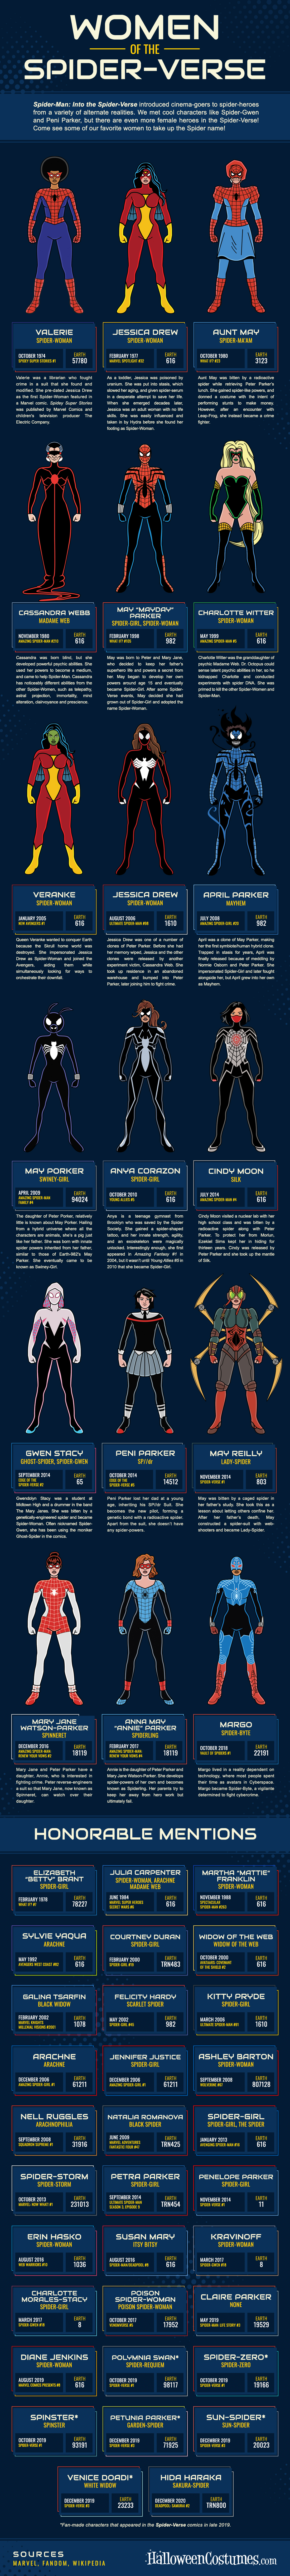 Women of the Spider-Verse Infographic